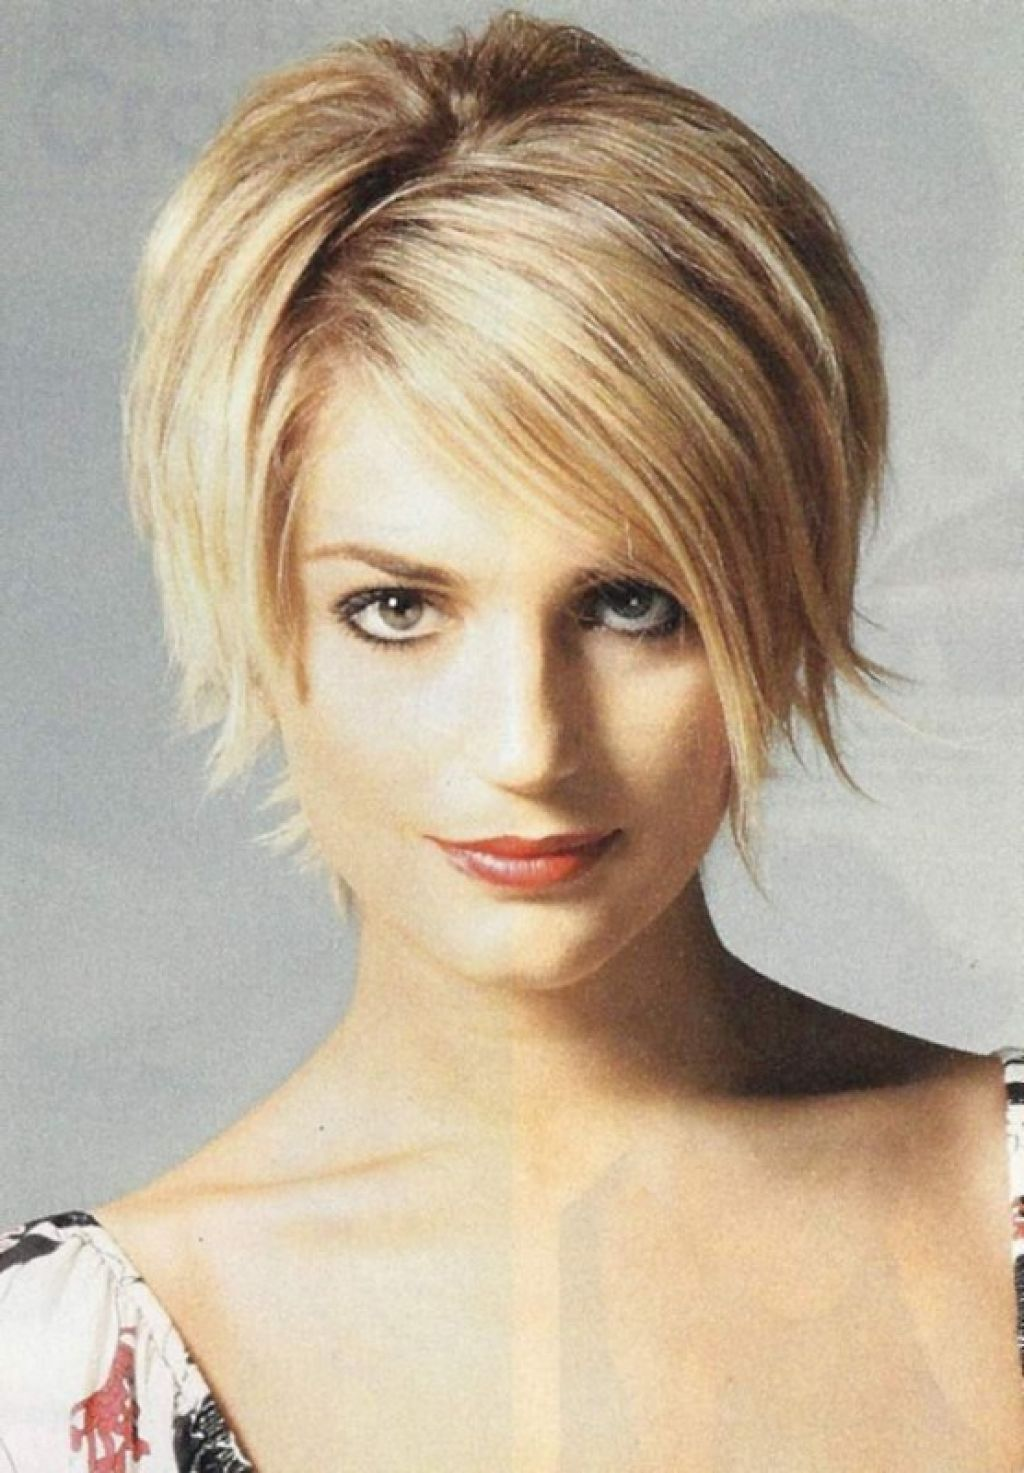 Hairstyles For Thin Fine Hair Captivating Short To Medium Hairstyles For Thin Fine Hair